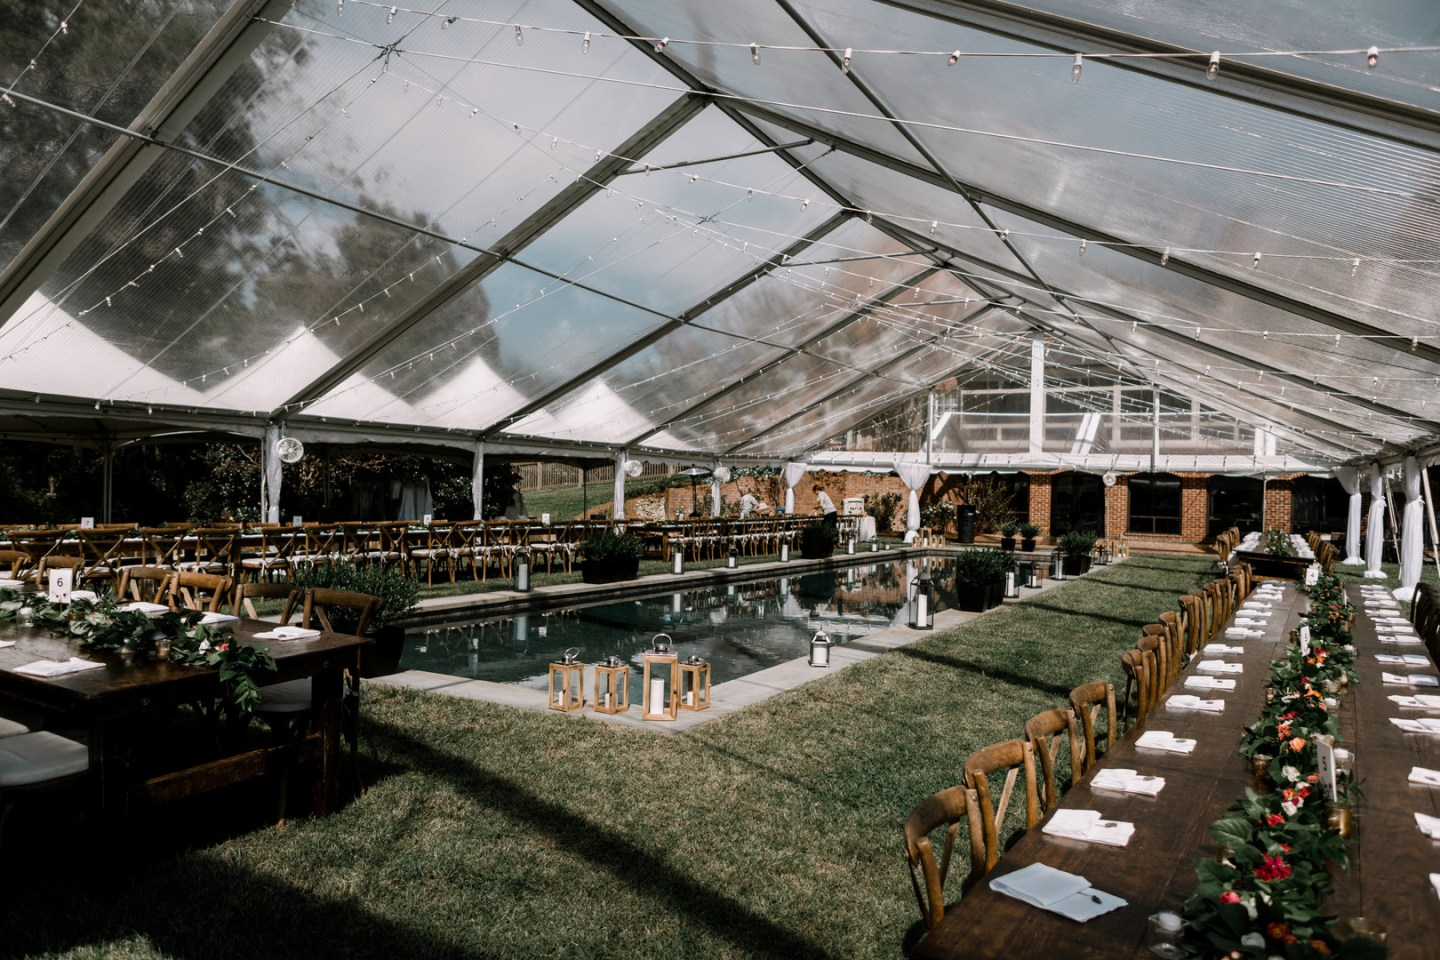 2ndxrqjs3ypyn7g4qq00_big-1440x960 Southern Hospitality: Outdoor Nuptials in Thomasville, NC